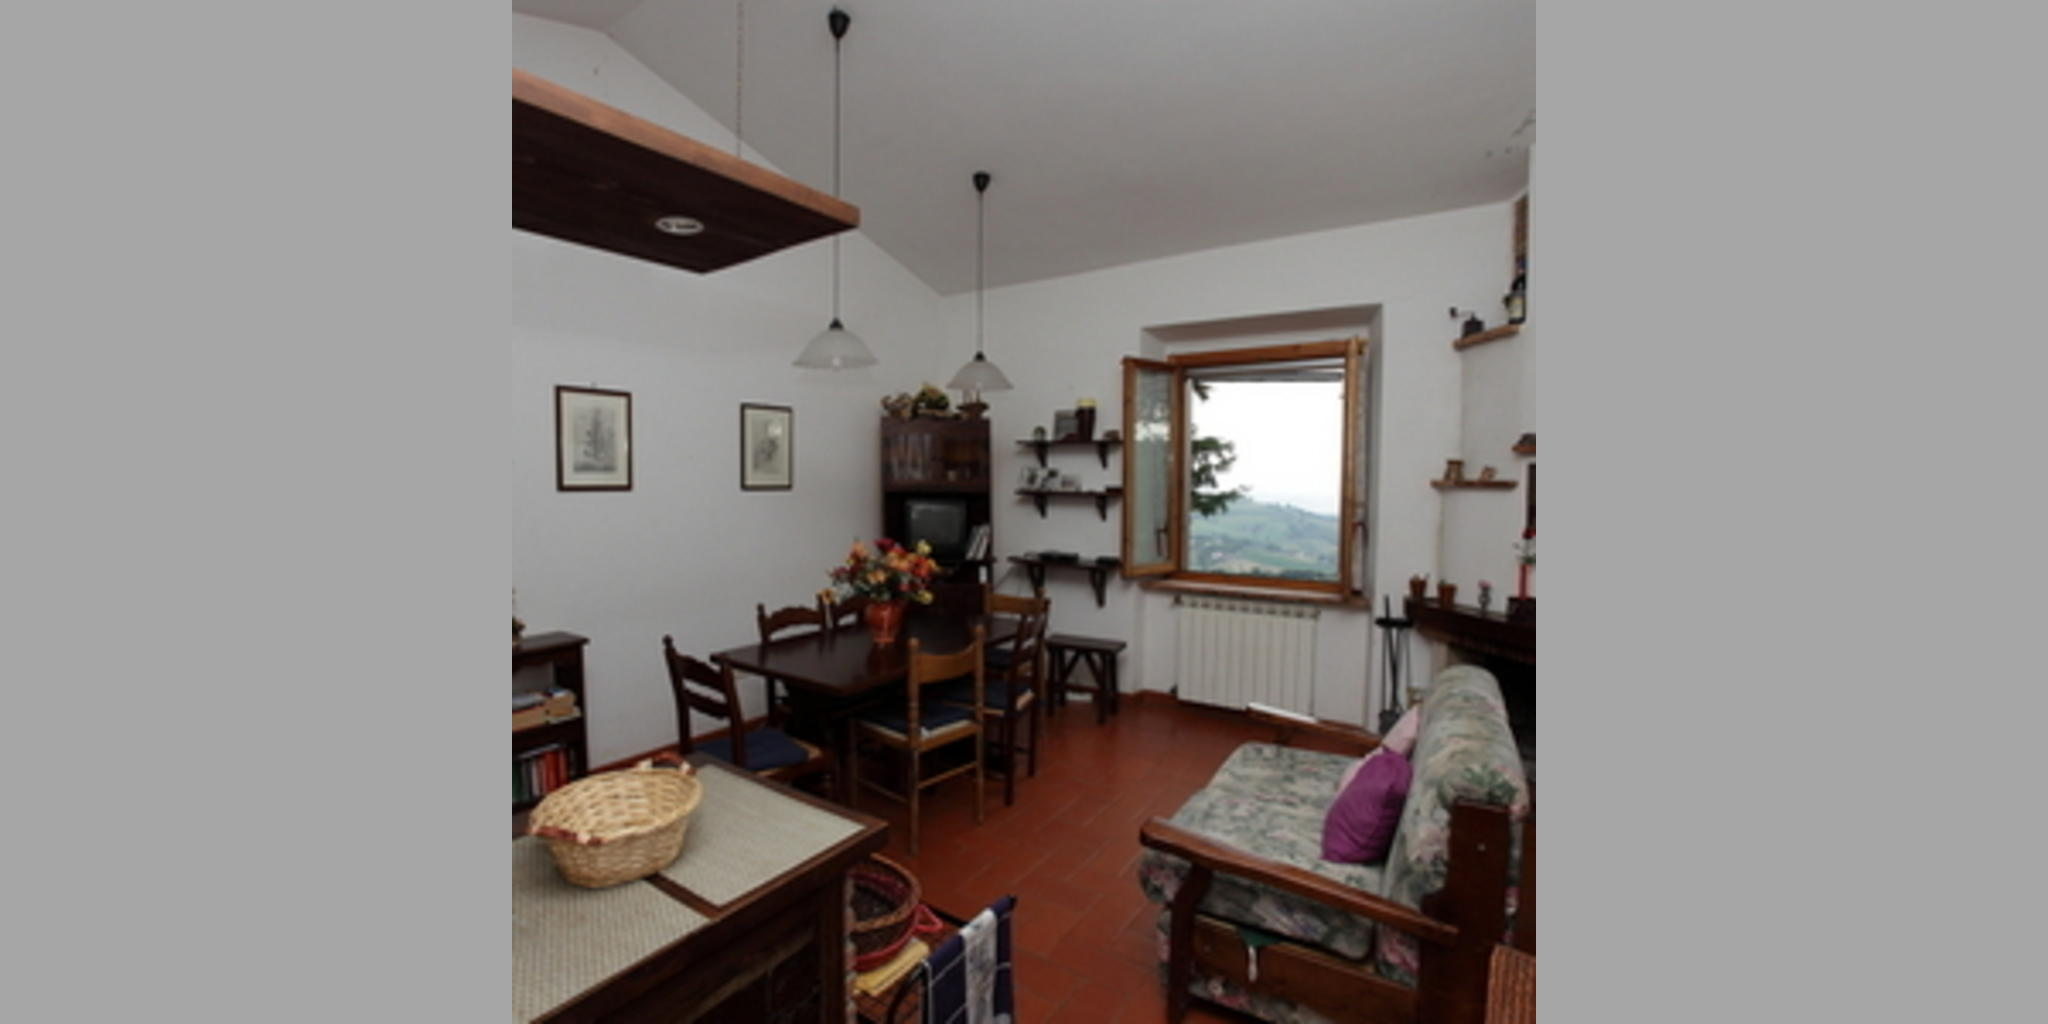 Apartamento Lugnano In Teverina - Lugnano In Teverina